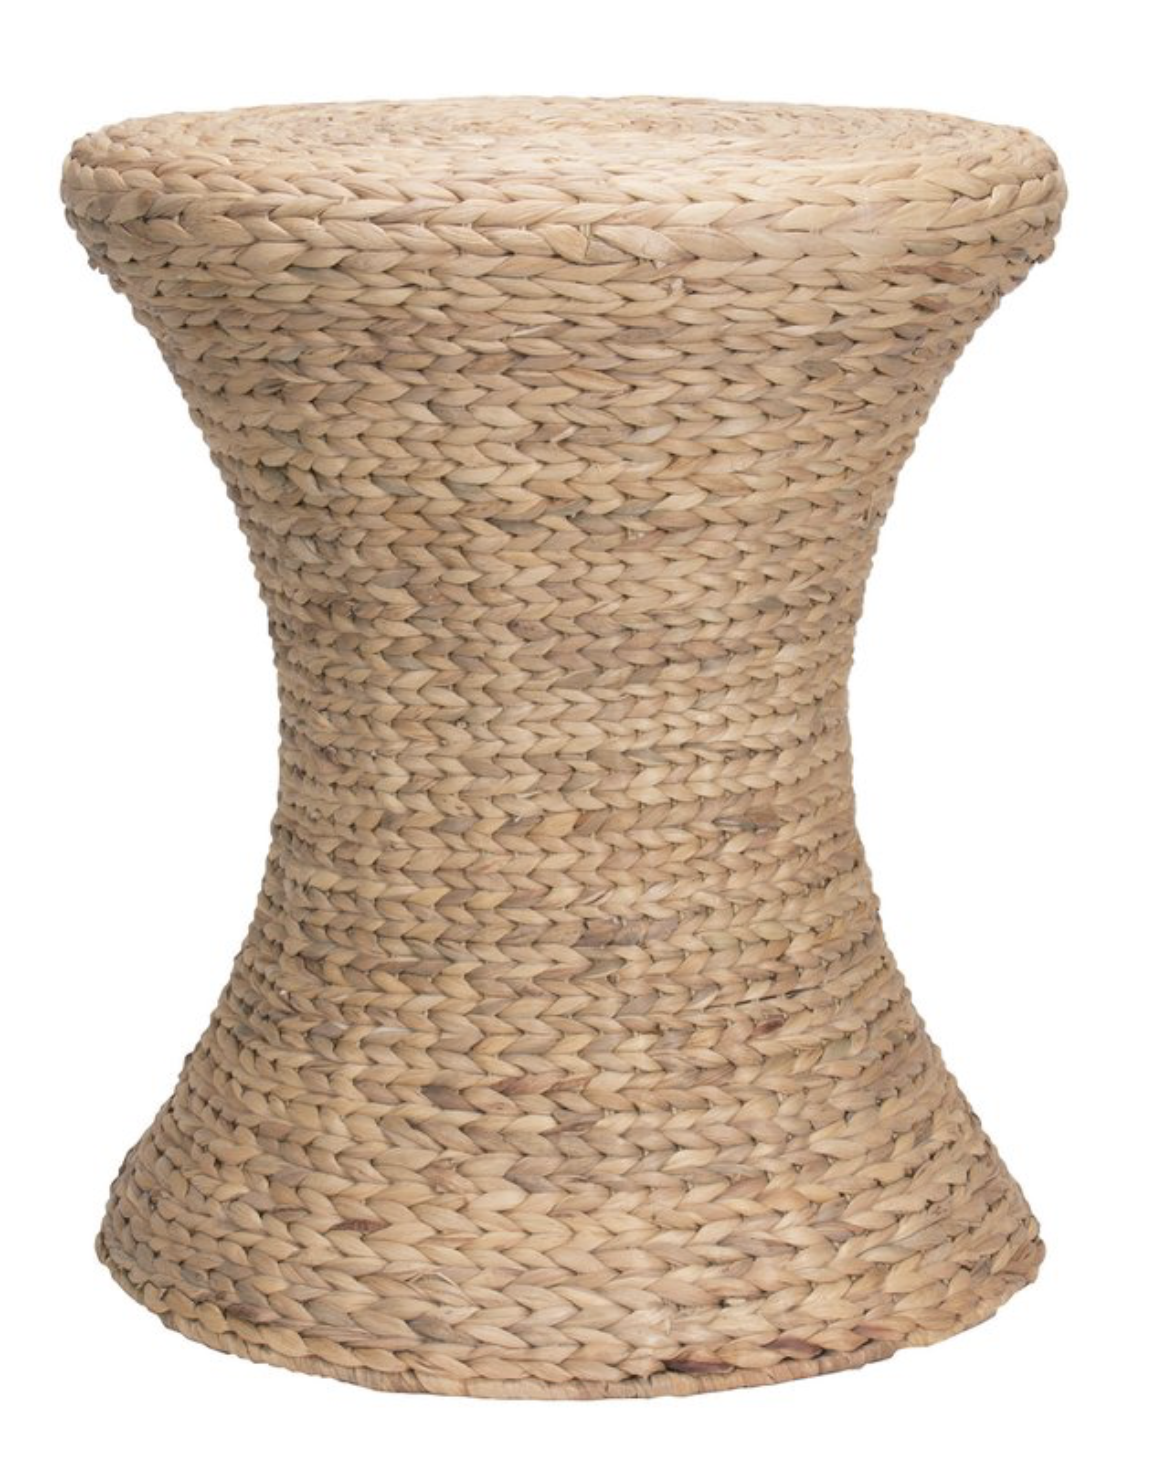 water hyacinth side table Serena and lily look for less